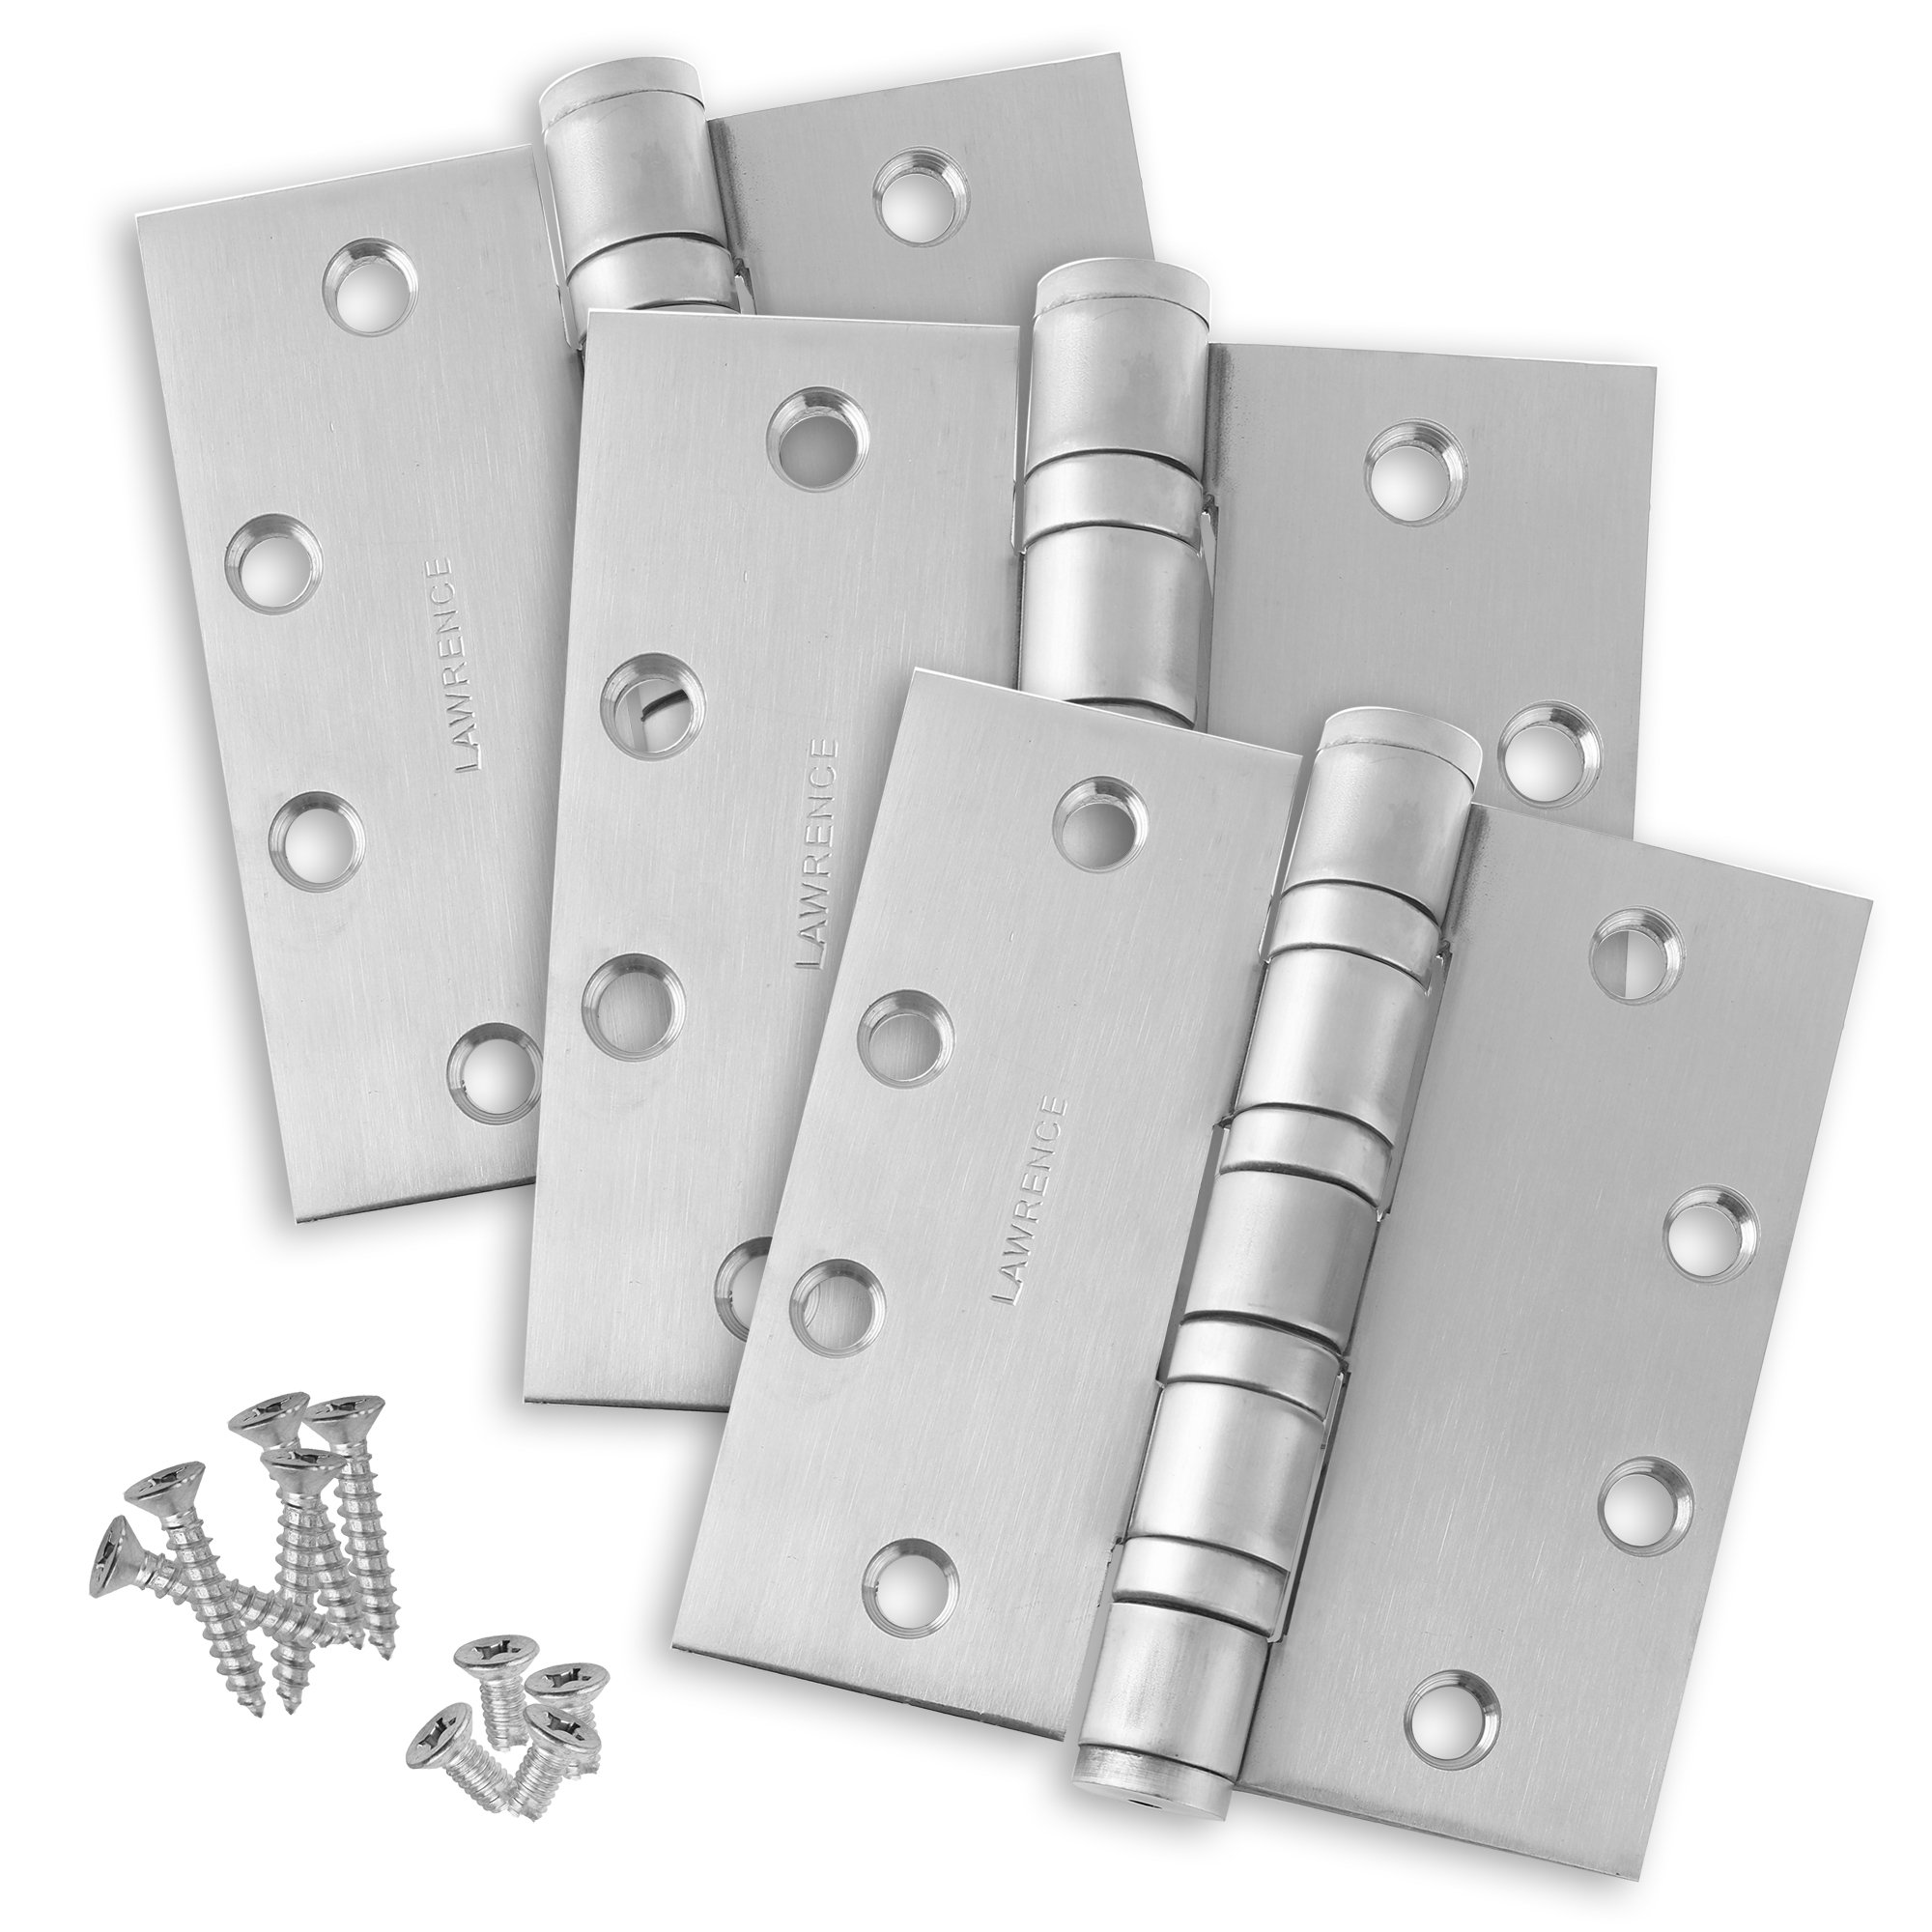 """Commercial Heavy Duty Door Hinges, Ball Bearing, Satin Brushed Chrome (US26D), 4.5"""" x 4.5"""", 3 Pack, by Lawrence Hardware"""